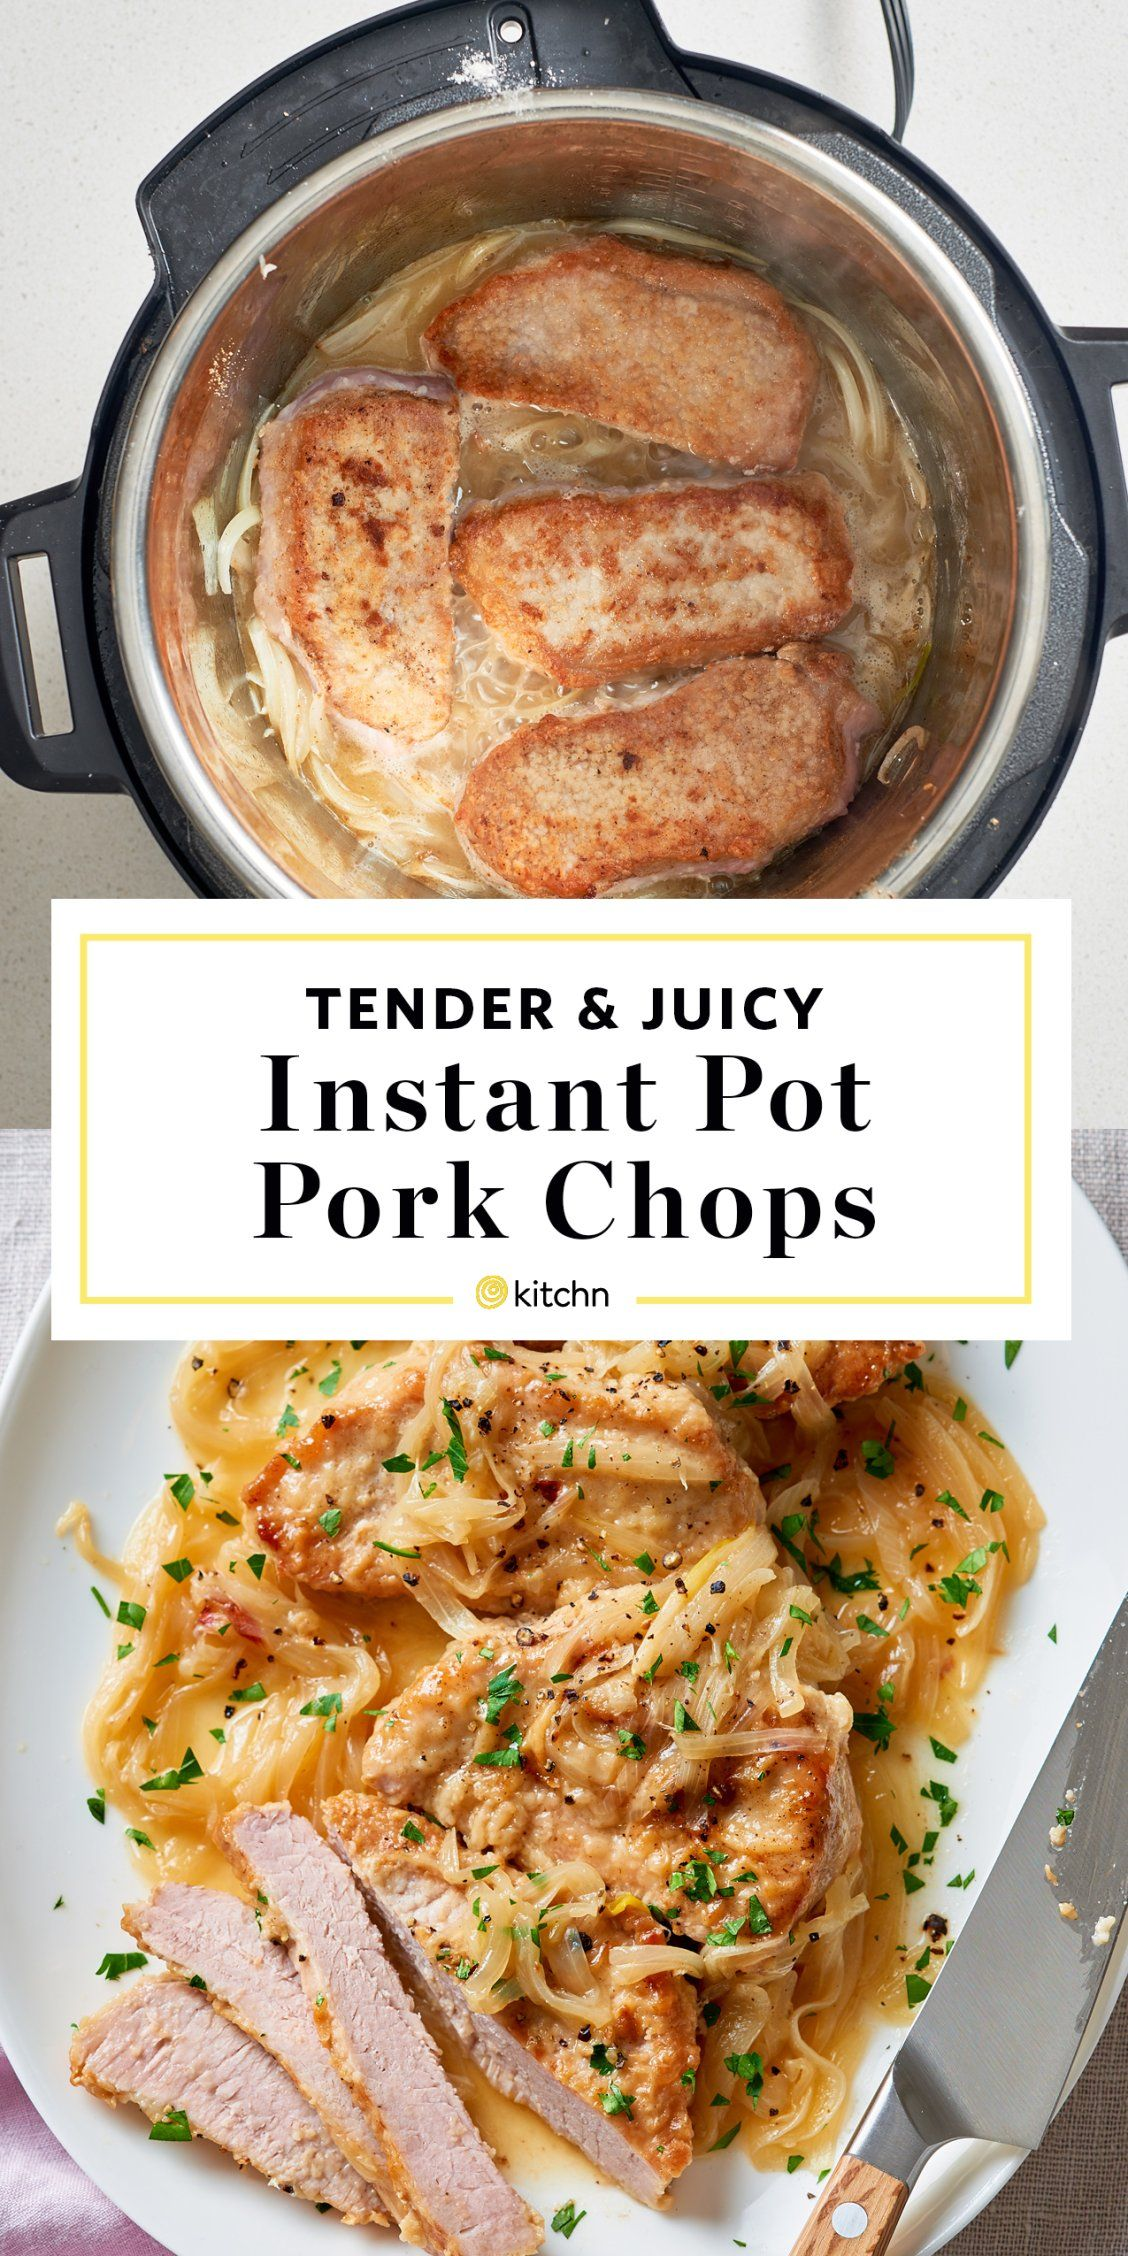 How To Make Tender and Juicy Instant Pot Pork Chops #instantpotrecipesforbeginners